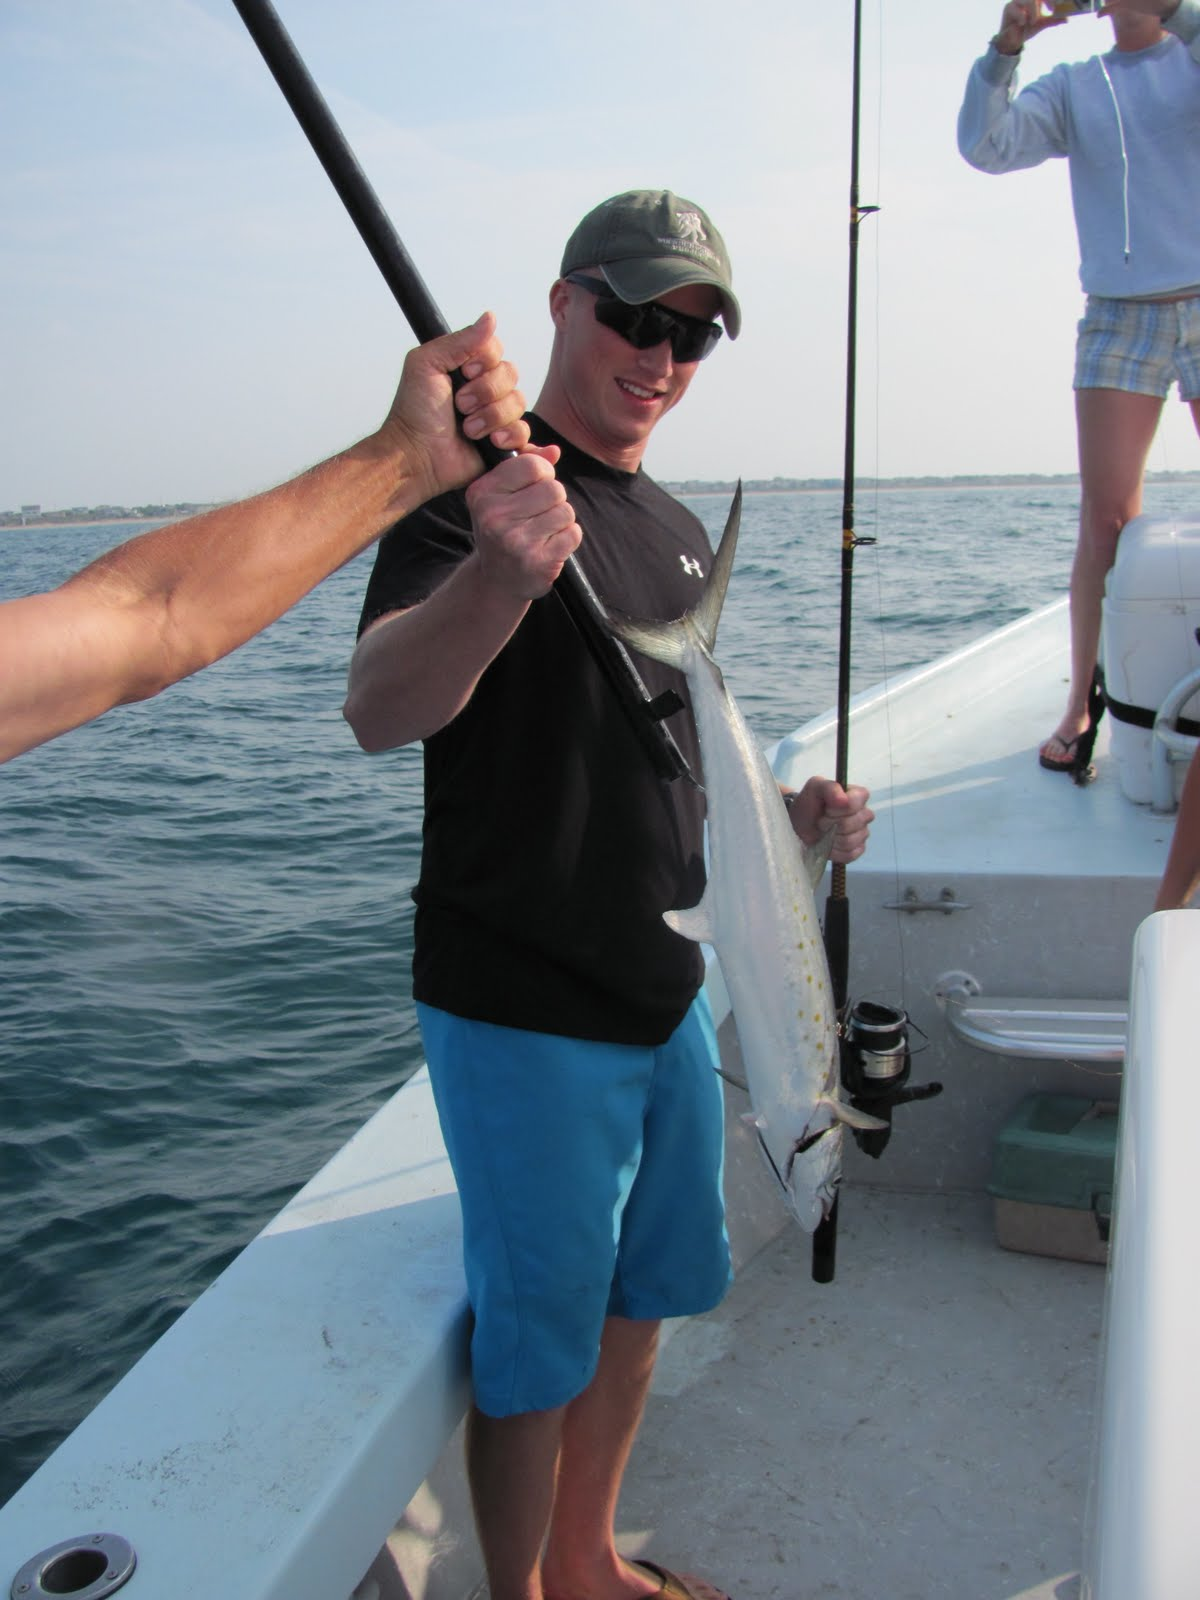 Emerald isle fishing report 2 more great days of fishing for Fishing report emerald isle nc